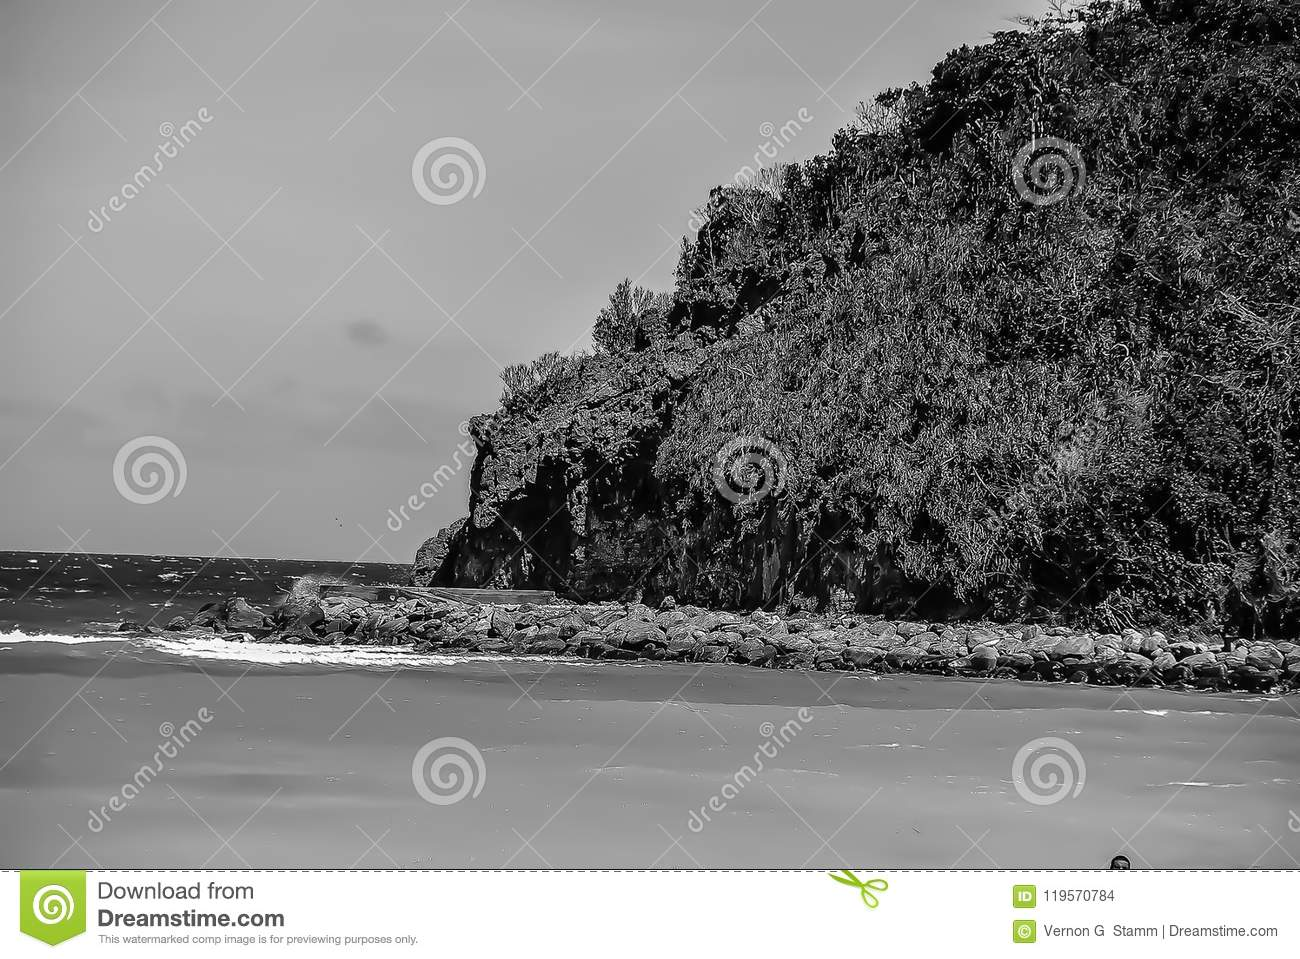 Rots Outcropping in Boracay